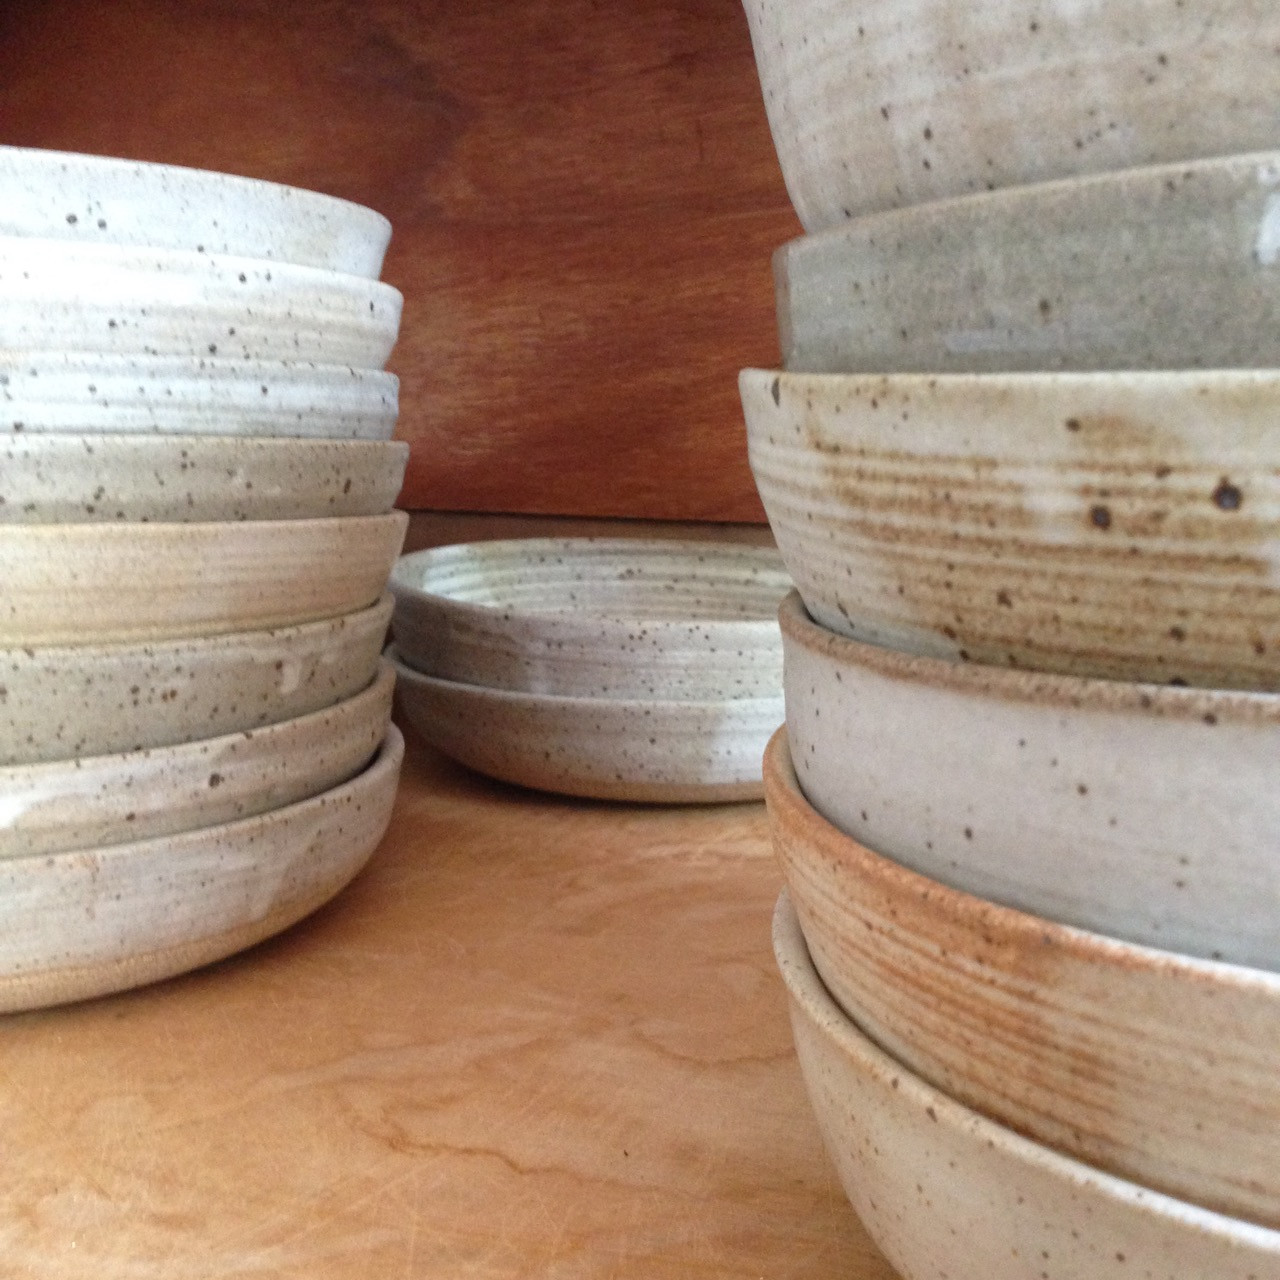 I make stacks of hand-thrown dinner bowls that are the same size. I can make them in matching glazes, but I also like to create sets with subtly varying tones, like these.